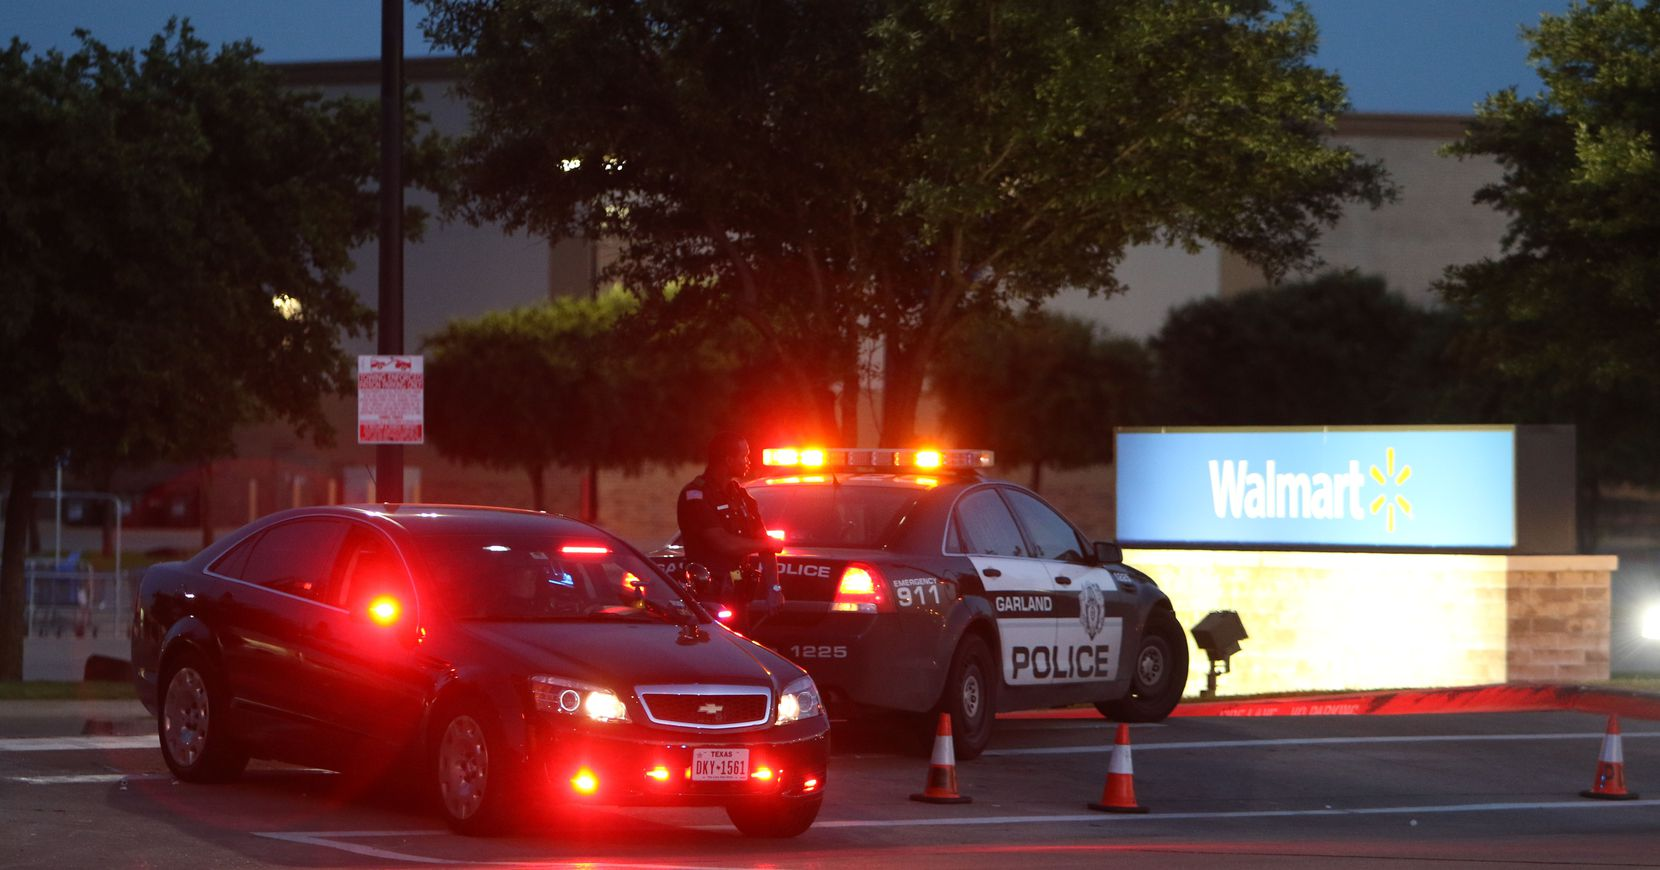 Police outside of an evacuated Walmart on North Garland secure a perimeter after a shooting during the American Freedom Defense Initiative program at the Curtis Culwell Center on Sunday, May 3 2015 in Garland, Texas. (Gregory Castillo/The Dallas Morning News)